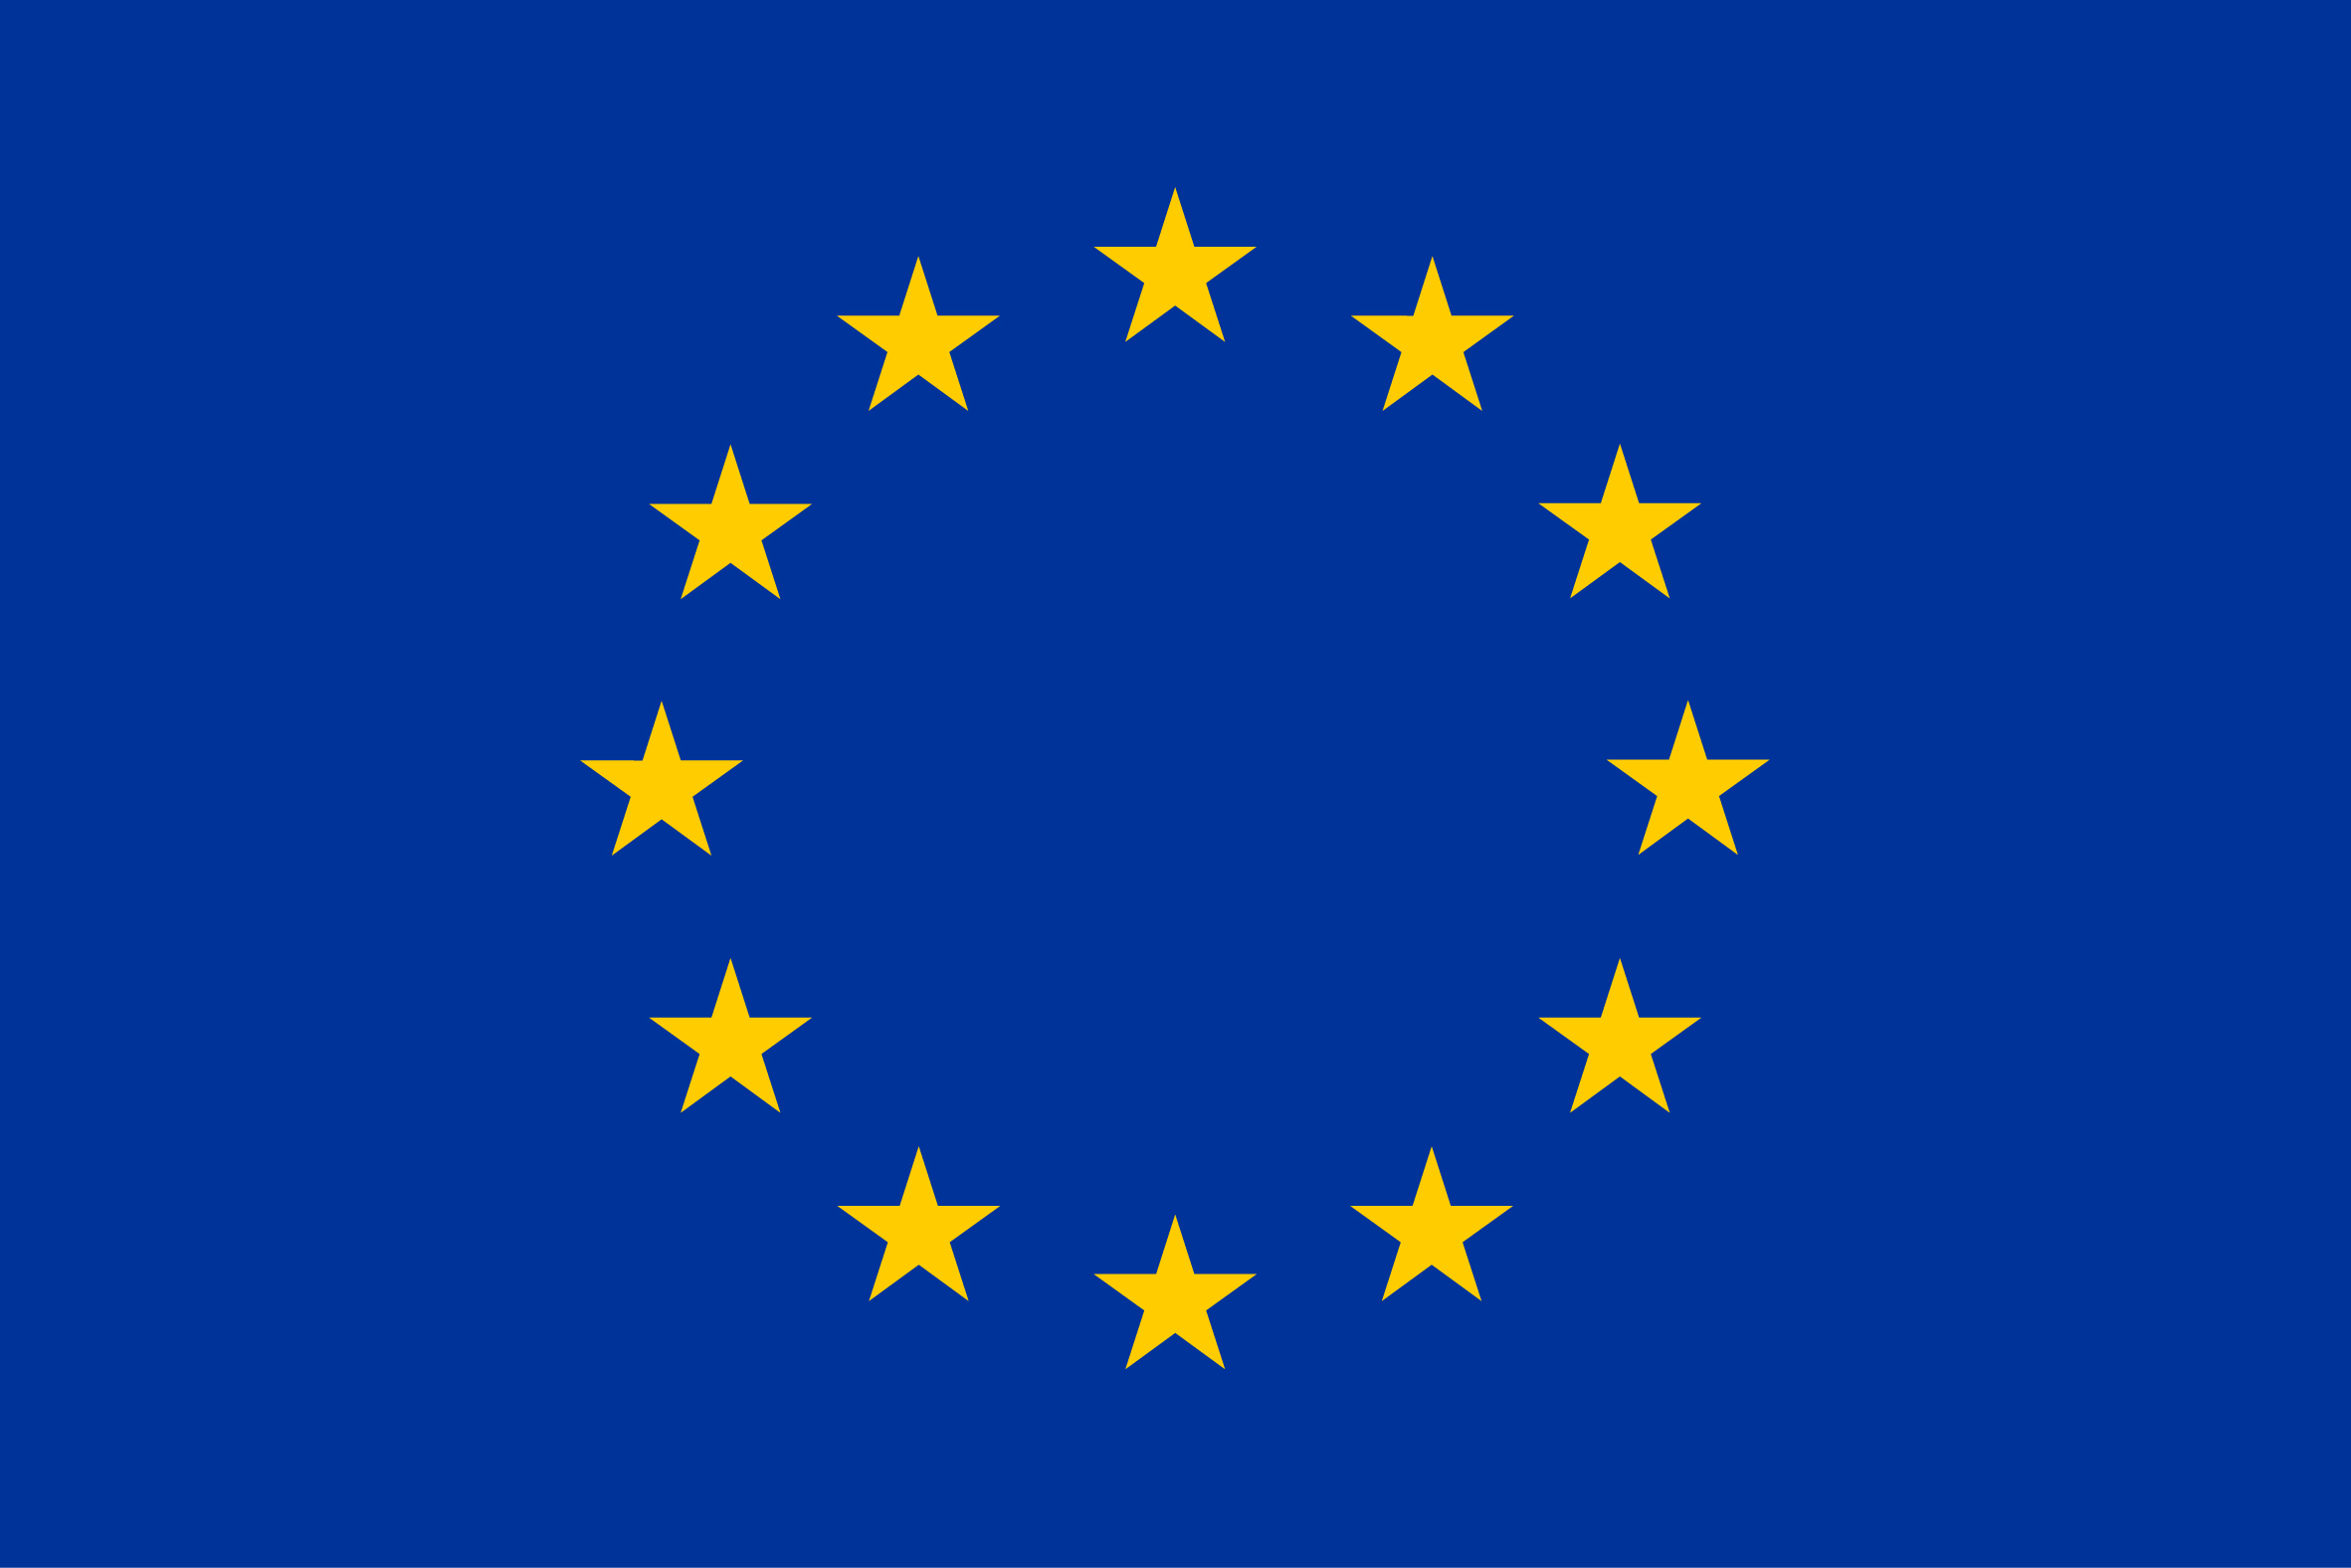 Image of European Union flag